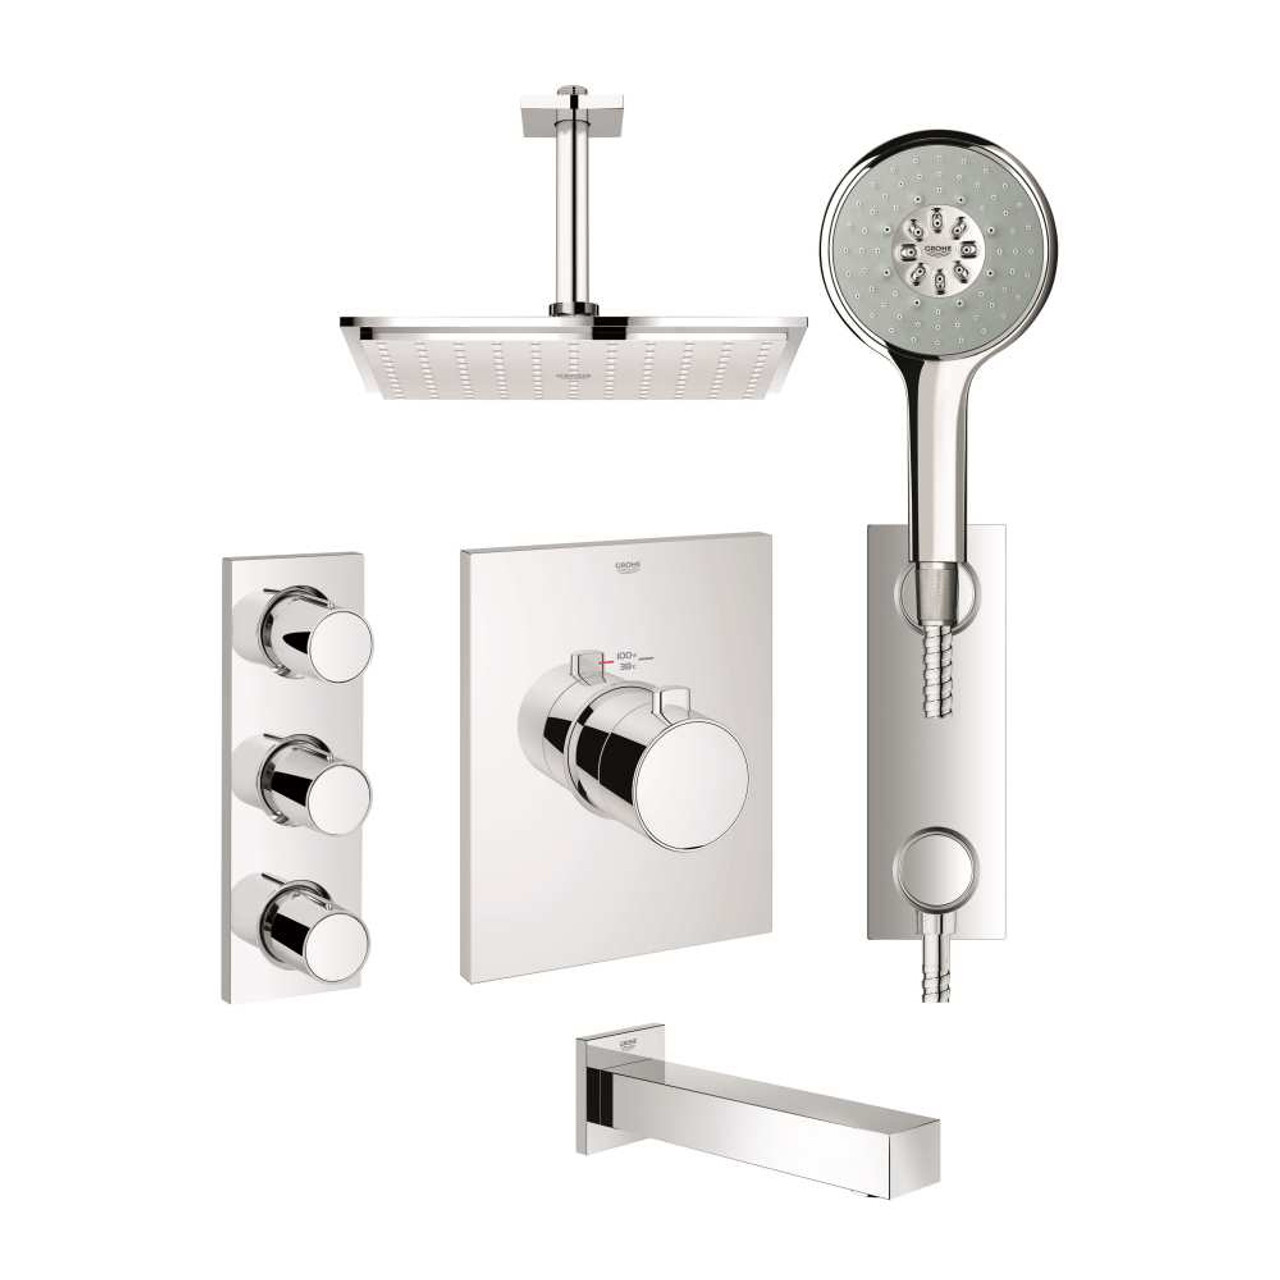 Grohe Gloucester Bathroom Faucet.Grohe Gloucester Brushed Nickel 1 ...